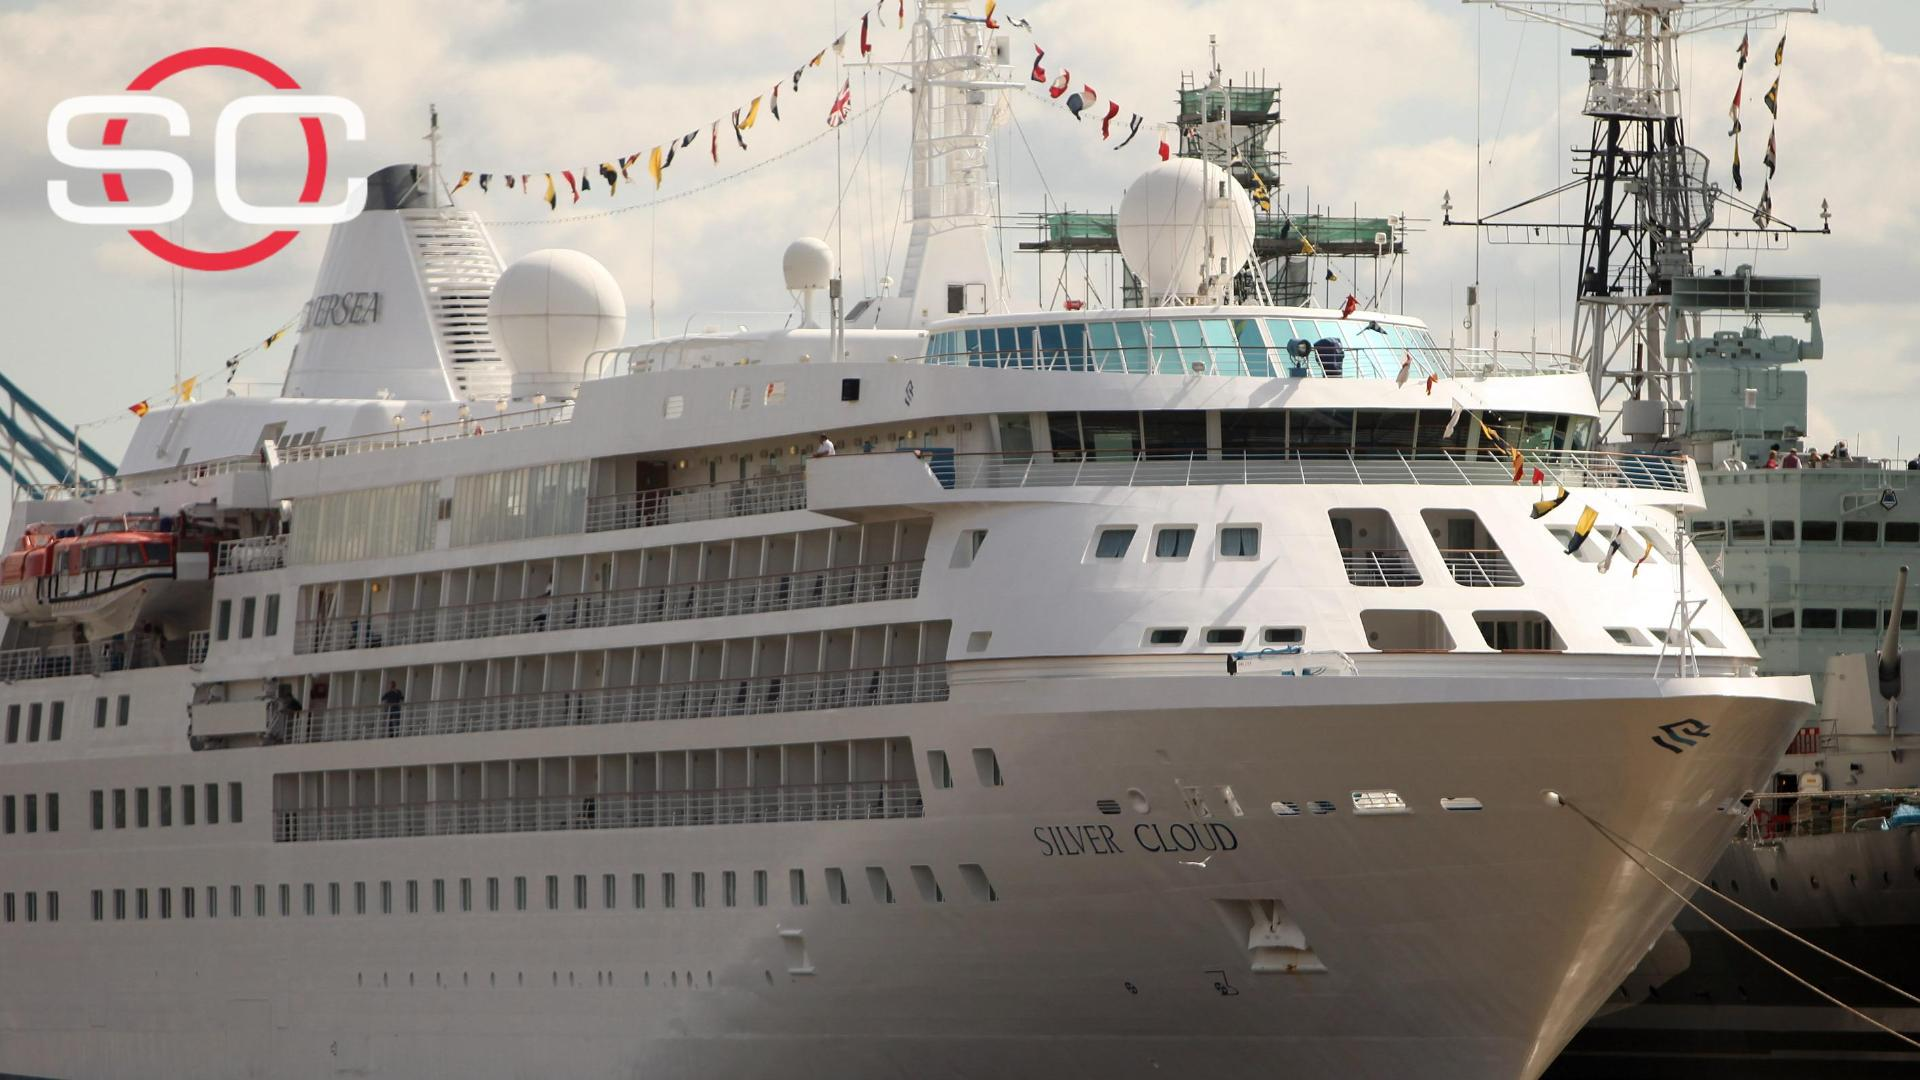 Us Mens Womens Basketball Teams To Stay On Cruise Ship During